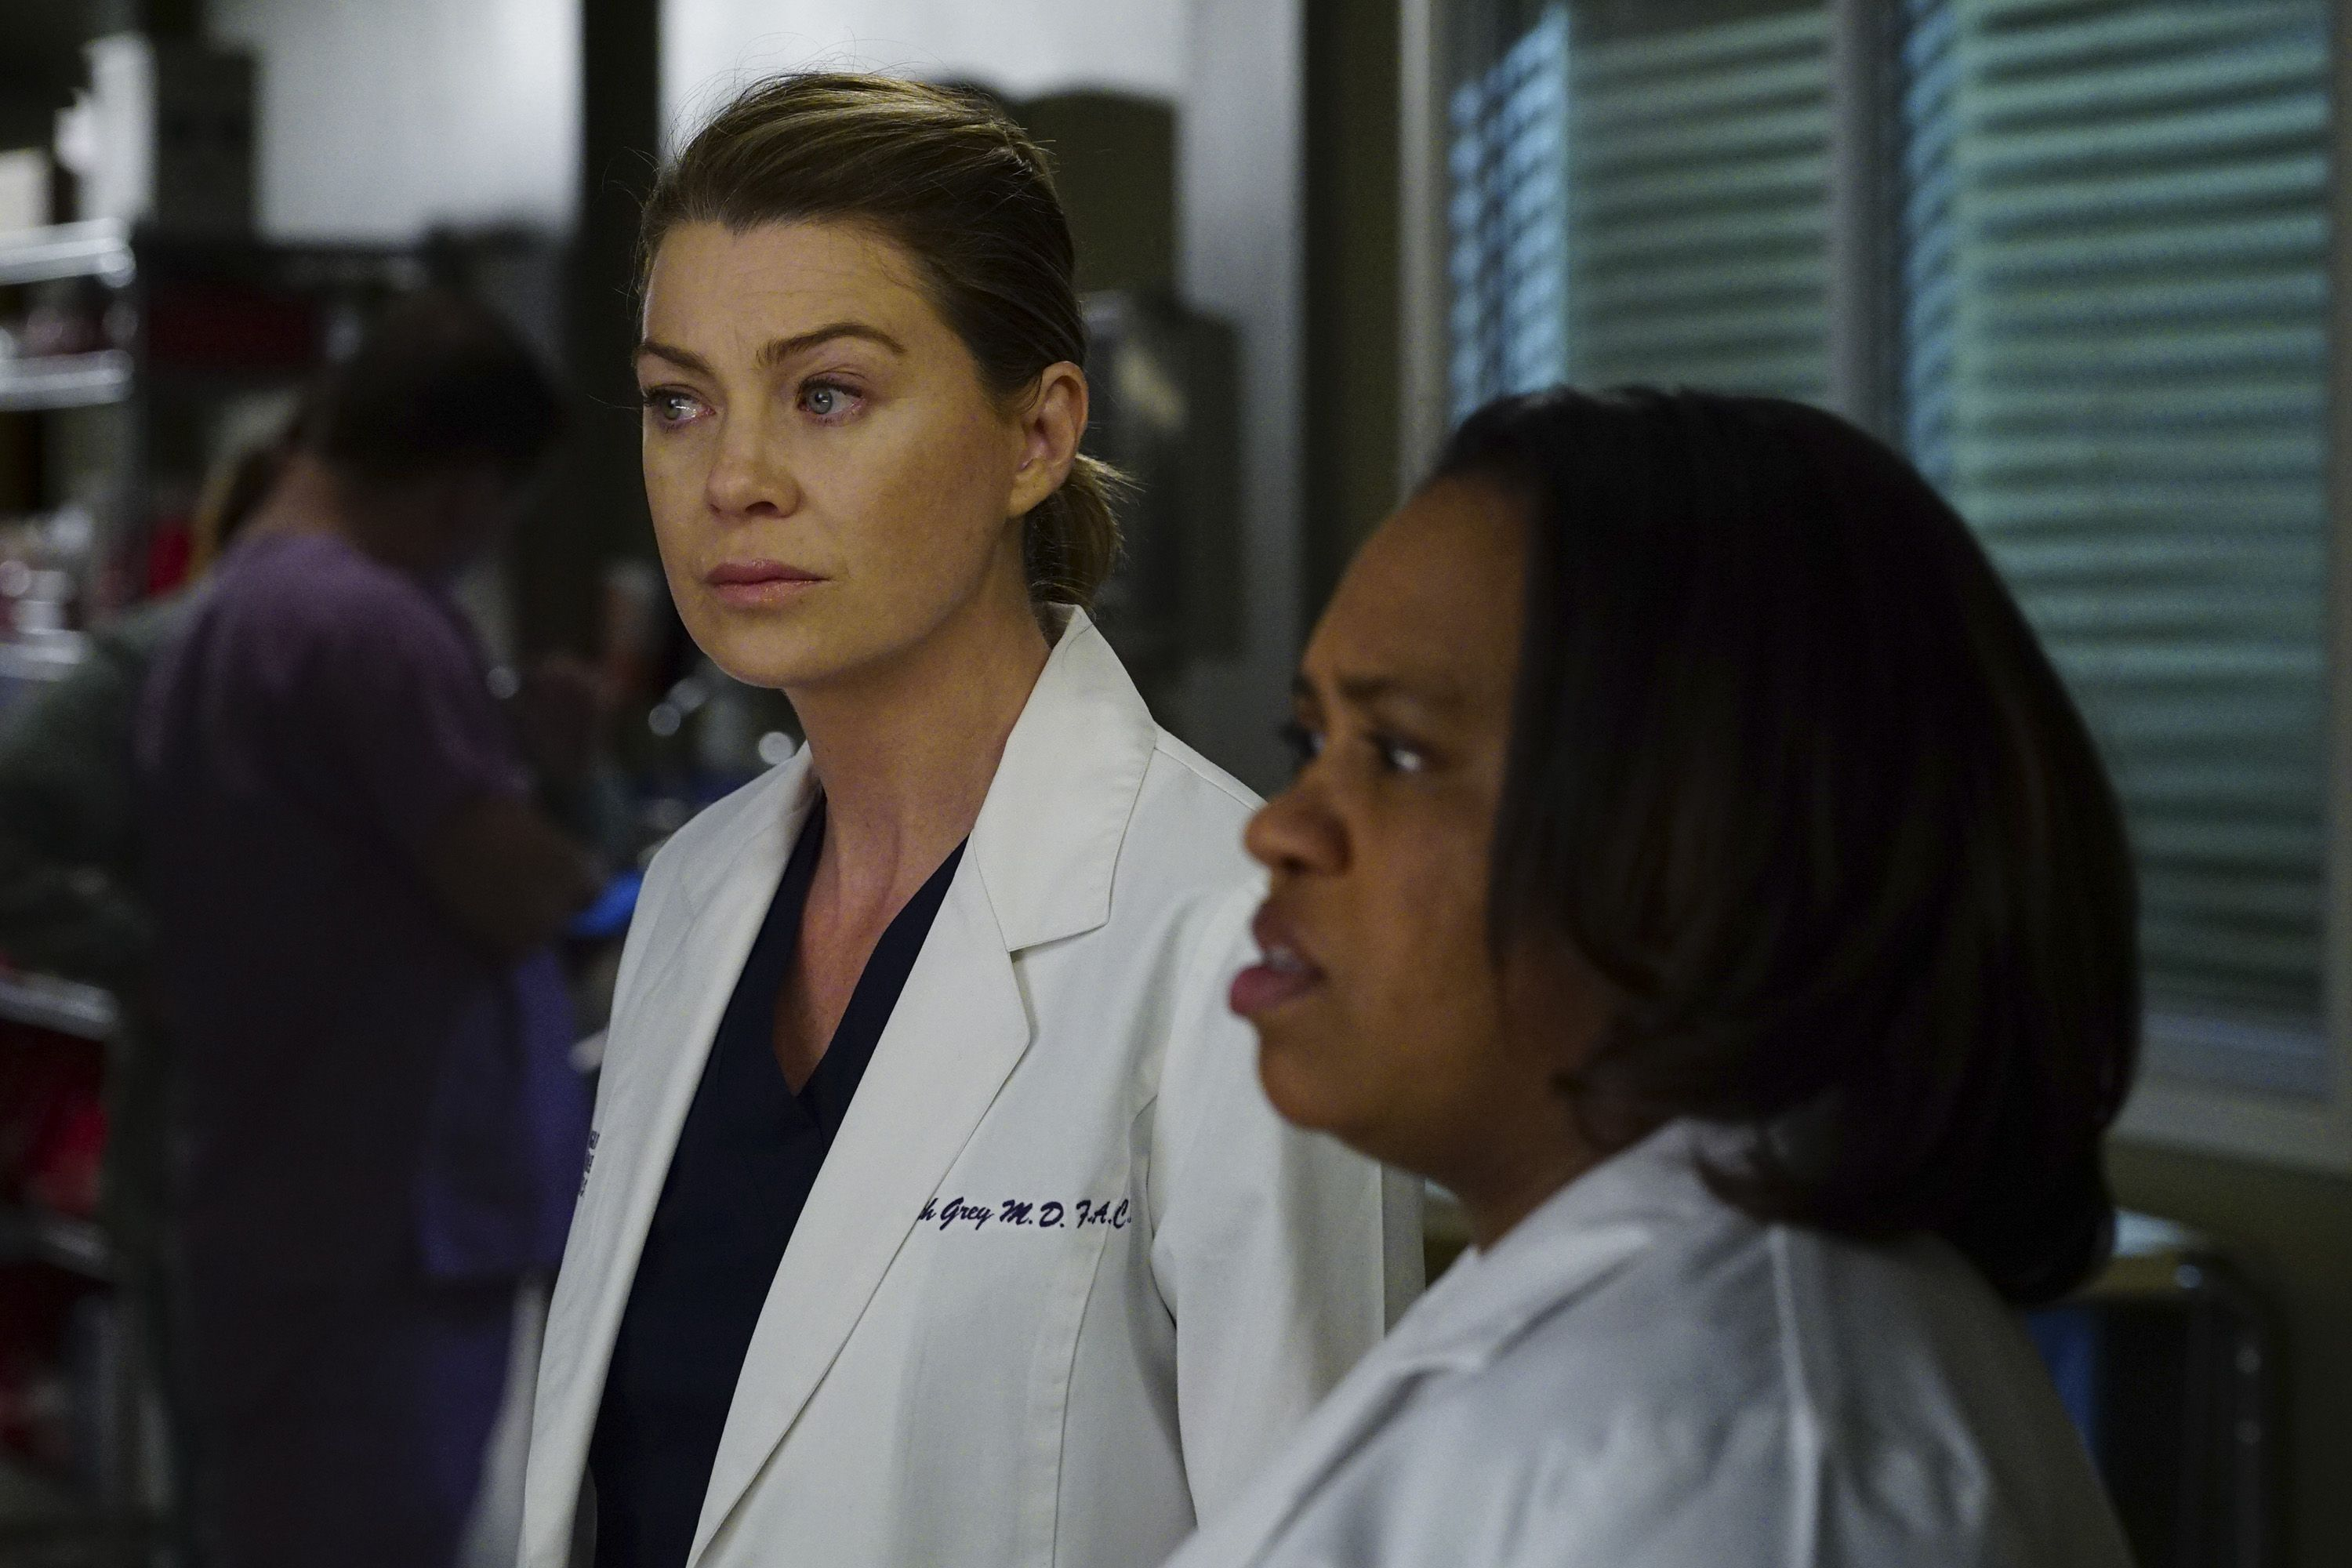 'Grey's Anatomy' Fans Are Worried Bailey Will Betray Meredith on Tonight's Episode